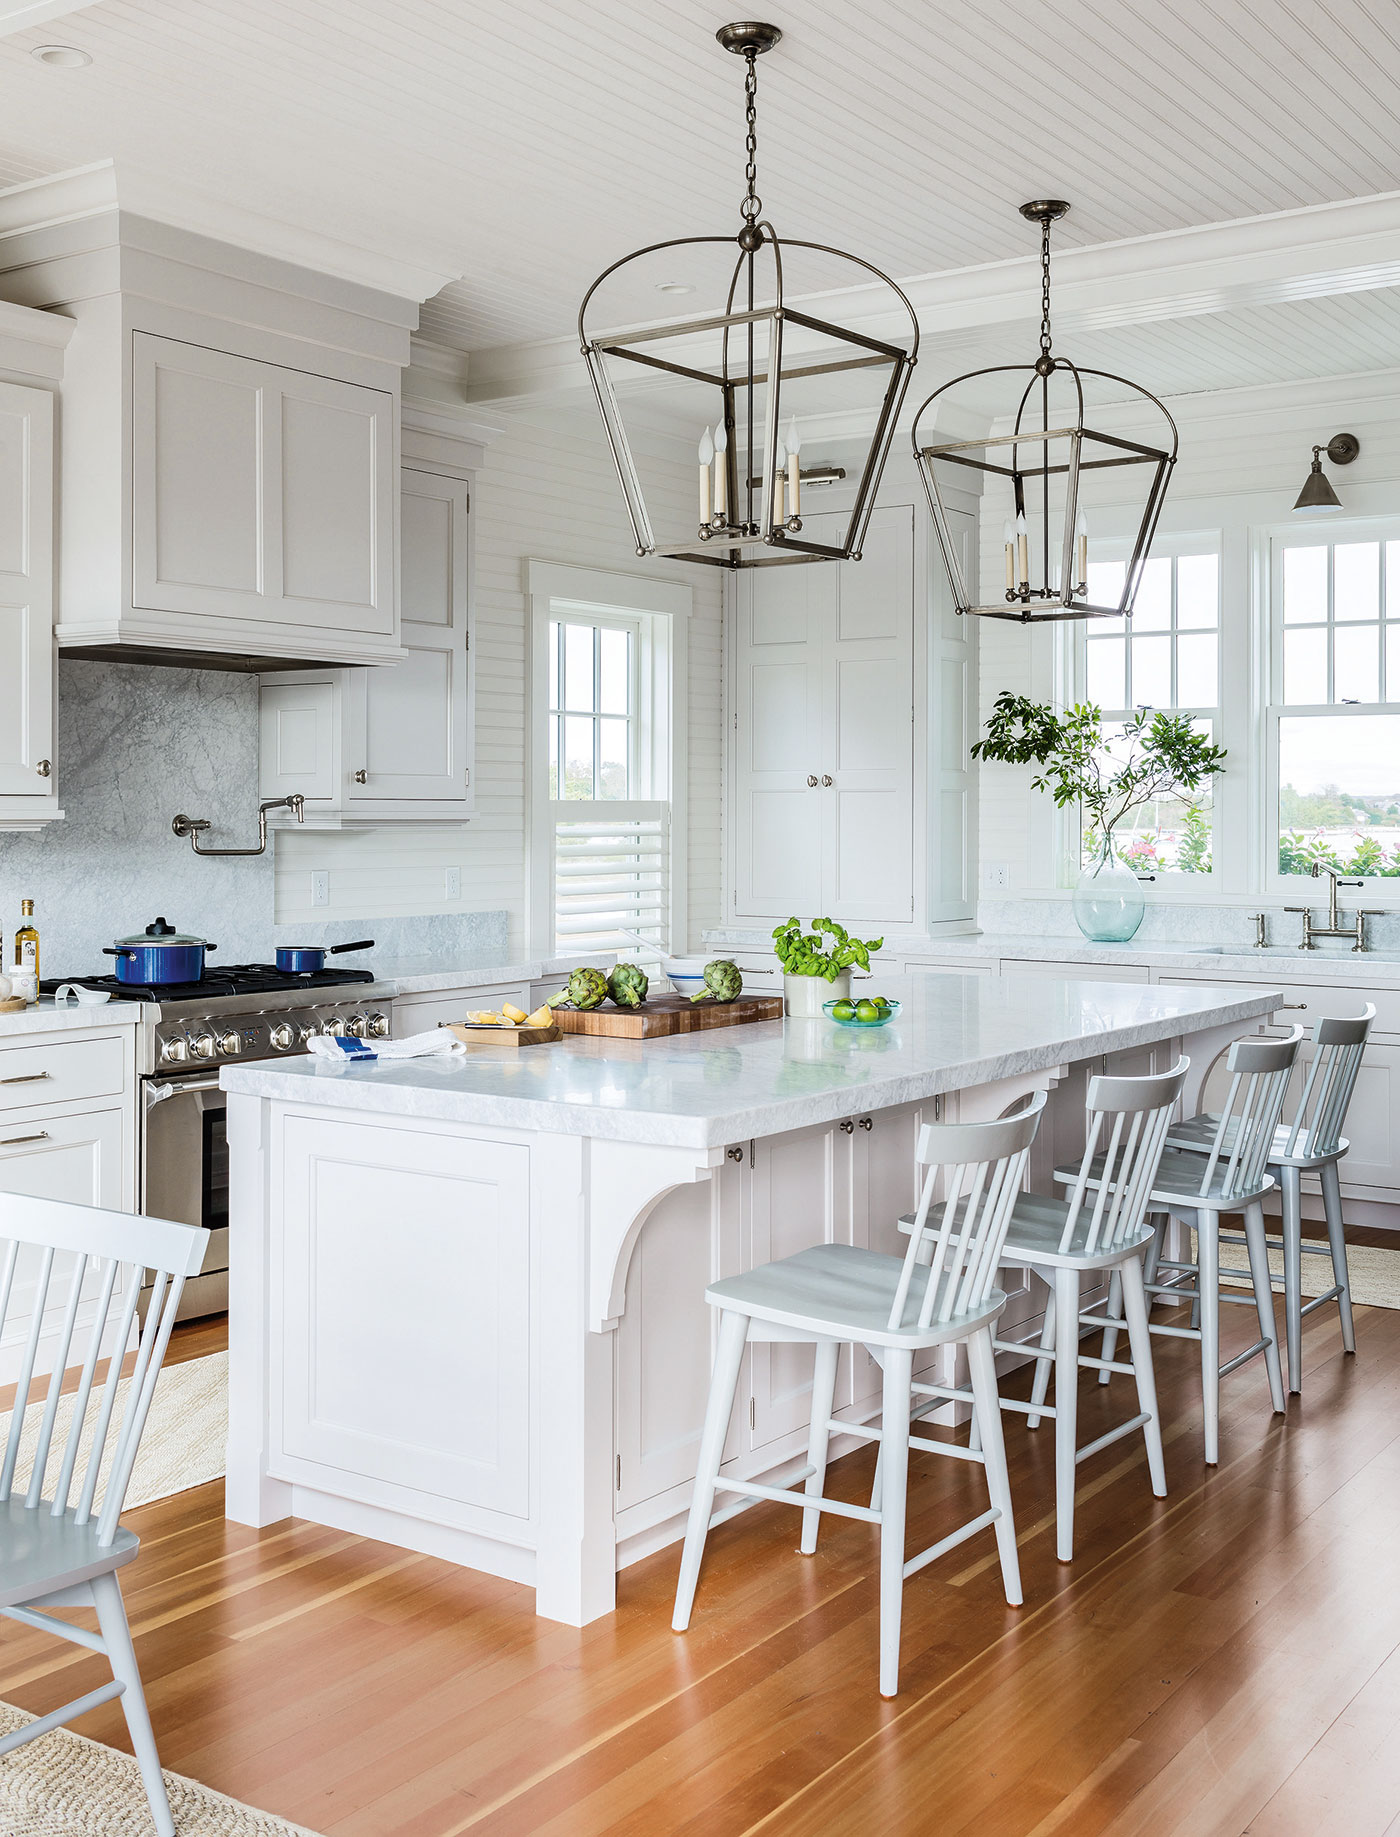 A custom kitchen addition for a historic Cape Cod home